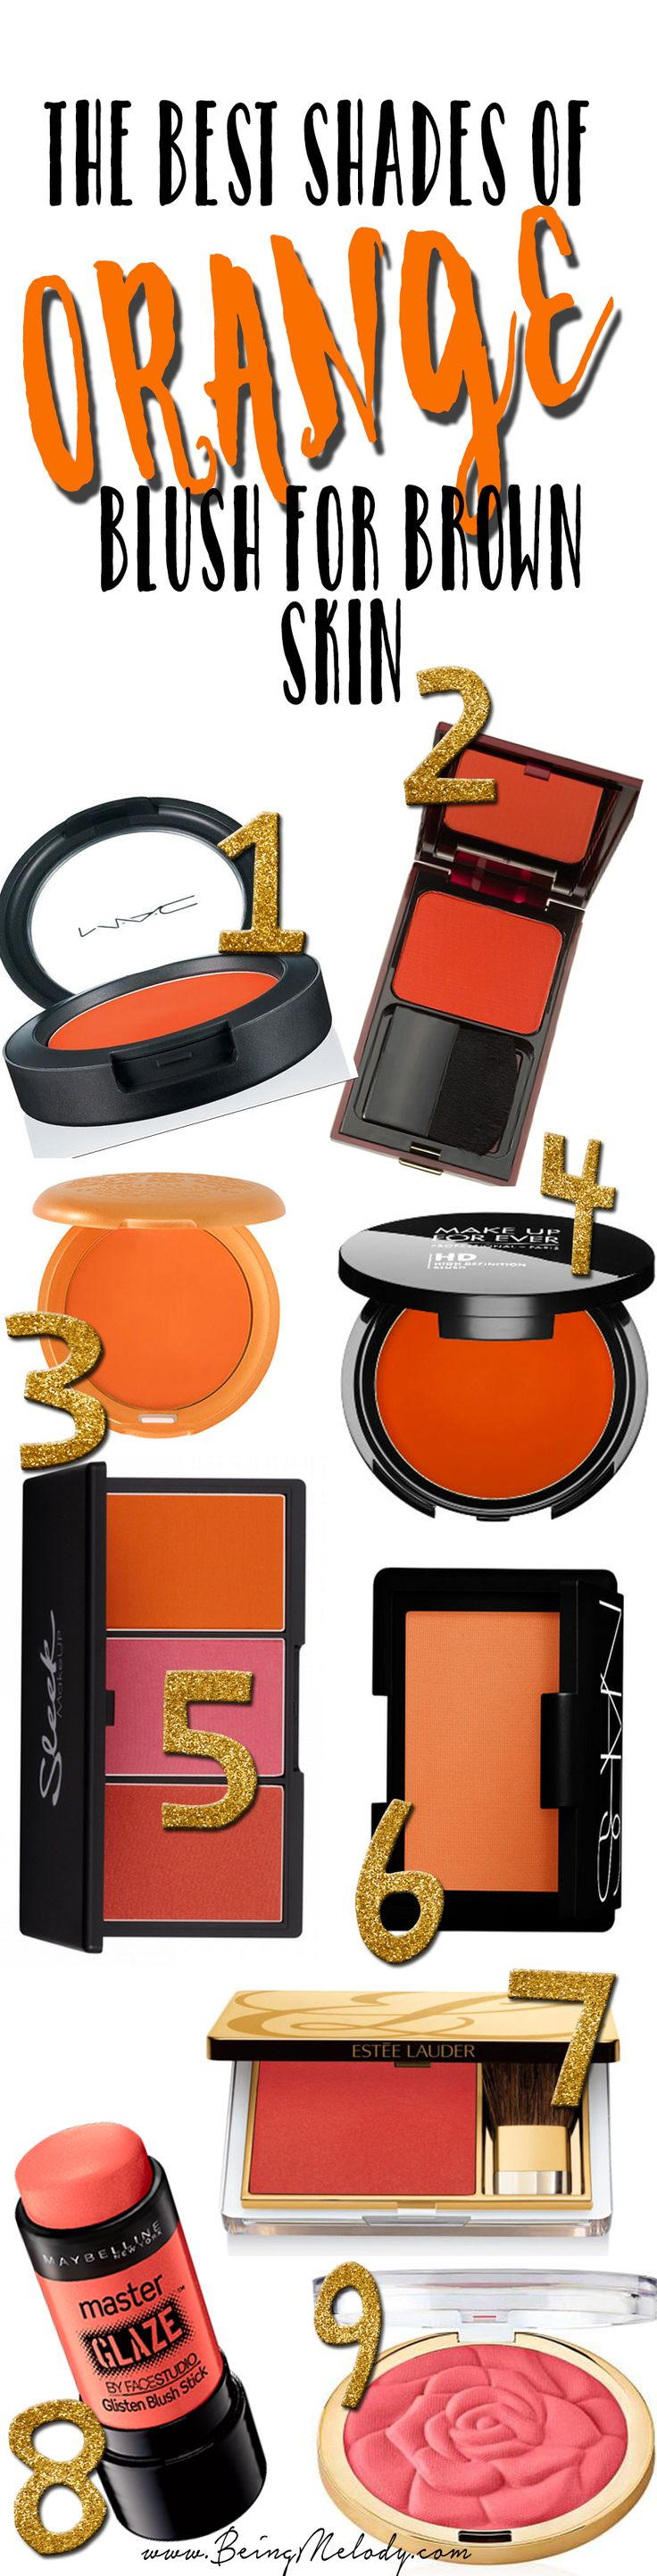 The Best Shades of Orange Blush for Brown Skin, olive skin, and women of color in general.